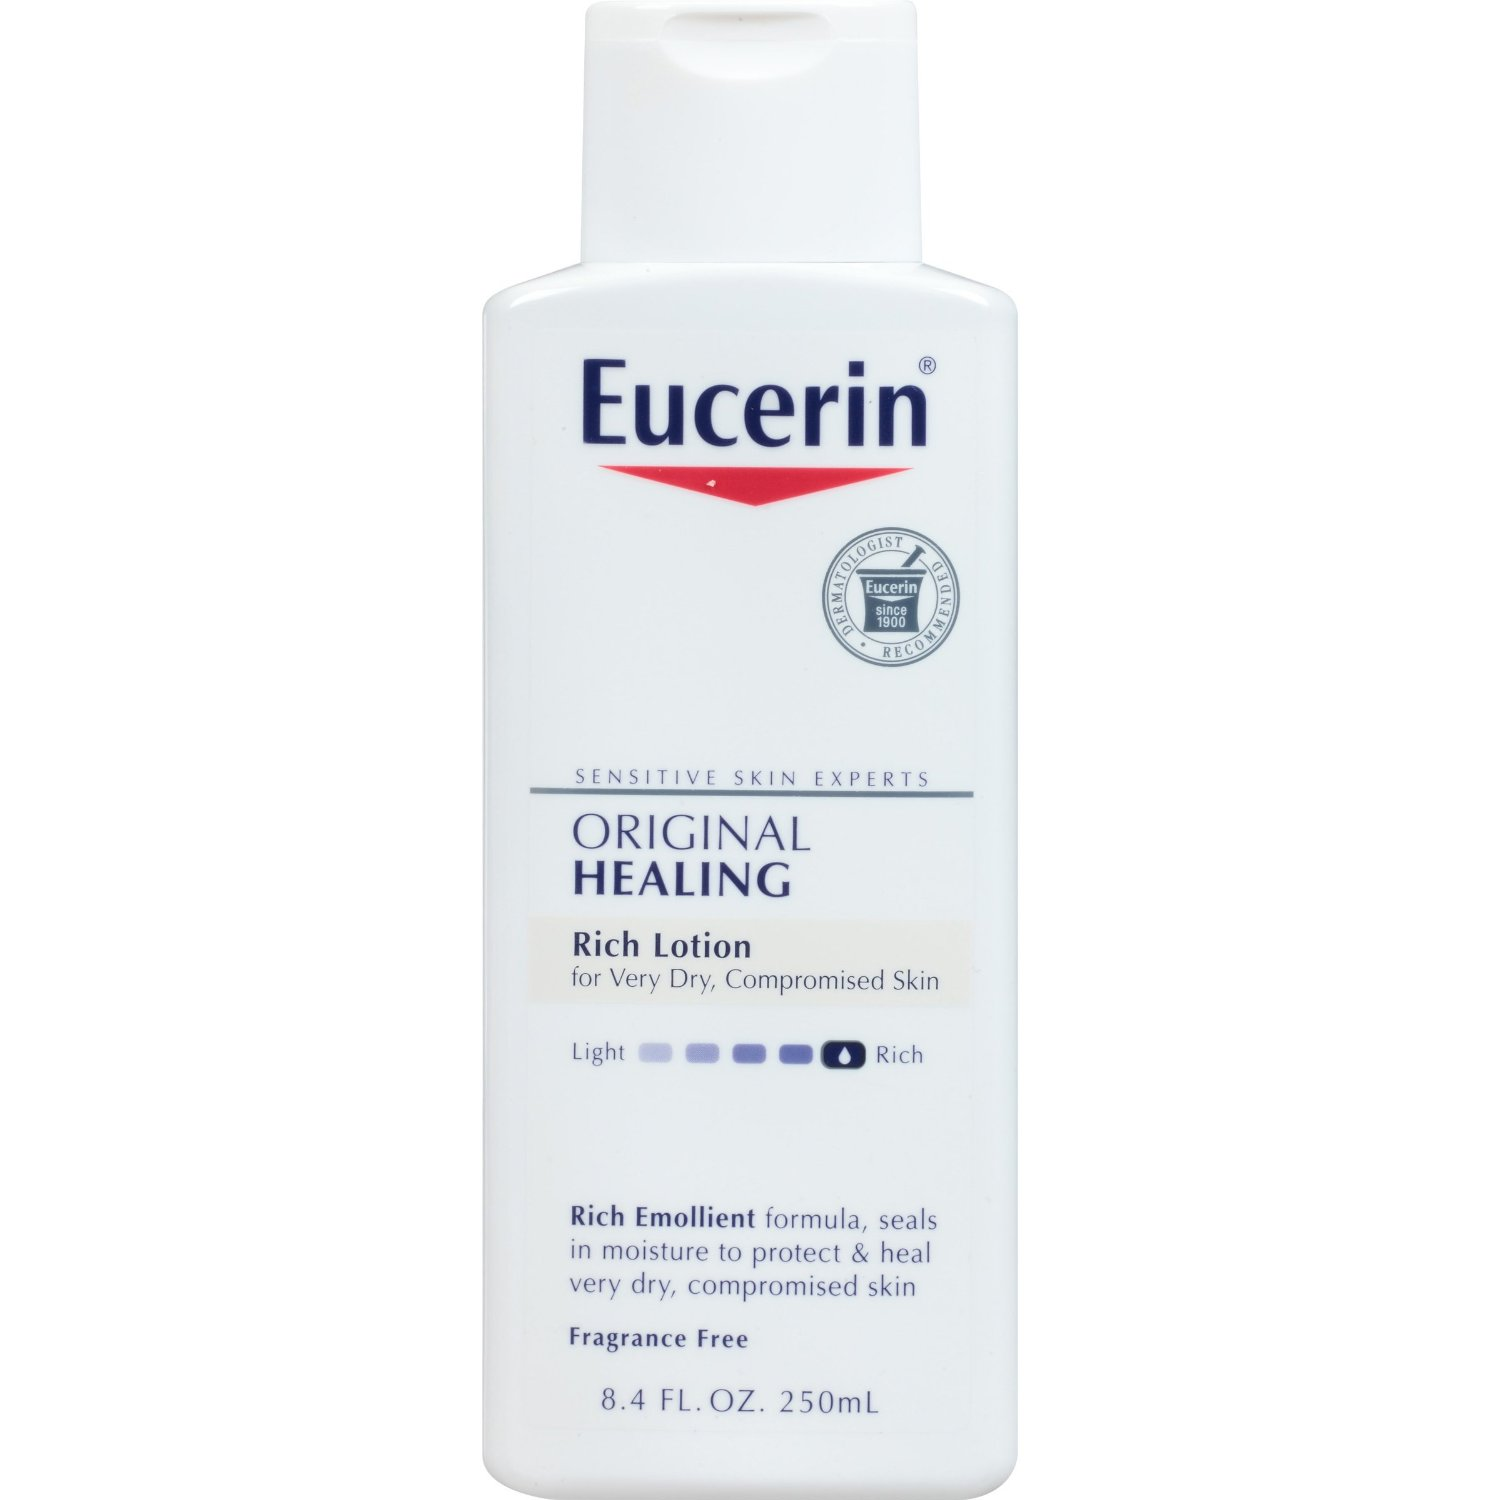 Eucerin Original Healing, Rich Lotion, Fragrance Free - 8.4 oz